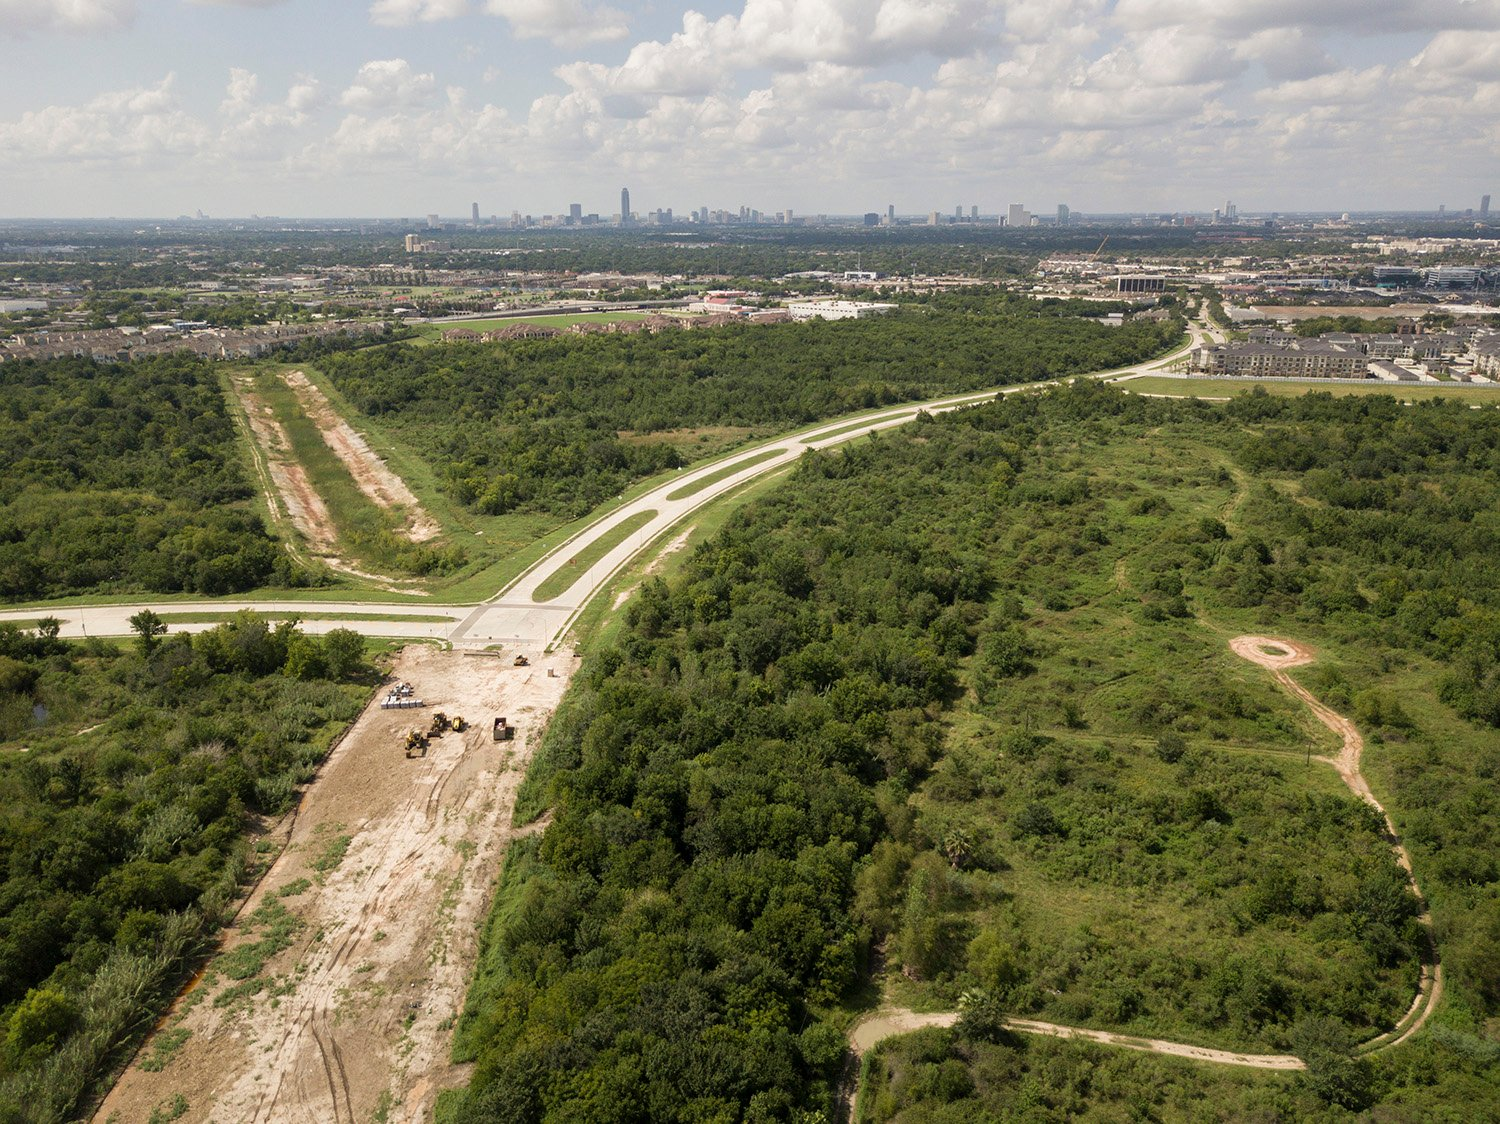 The University of Texas System bought over 300 acres of land in southwest Houston for $215 million. It now plans to sell the land.